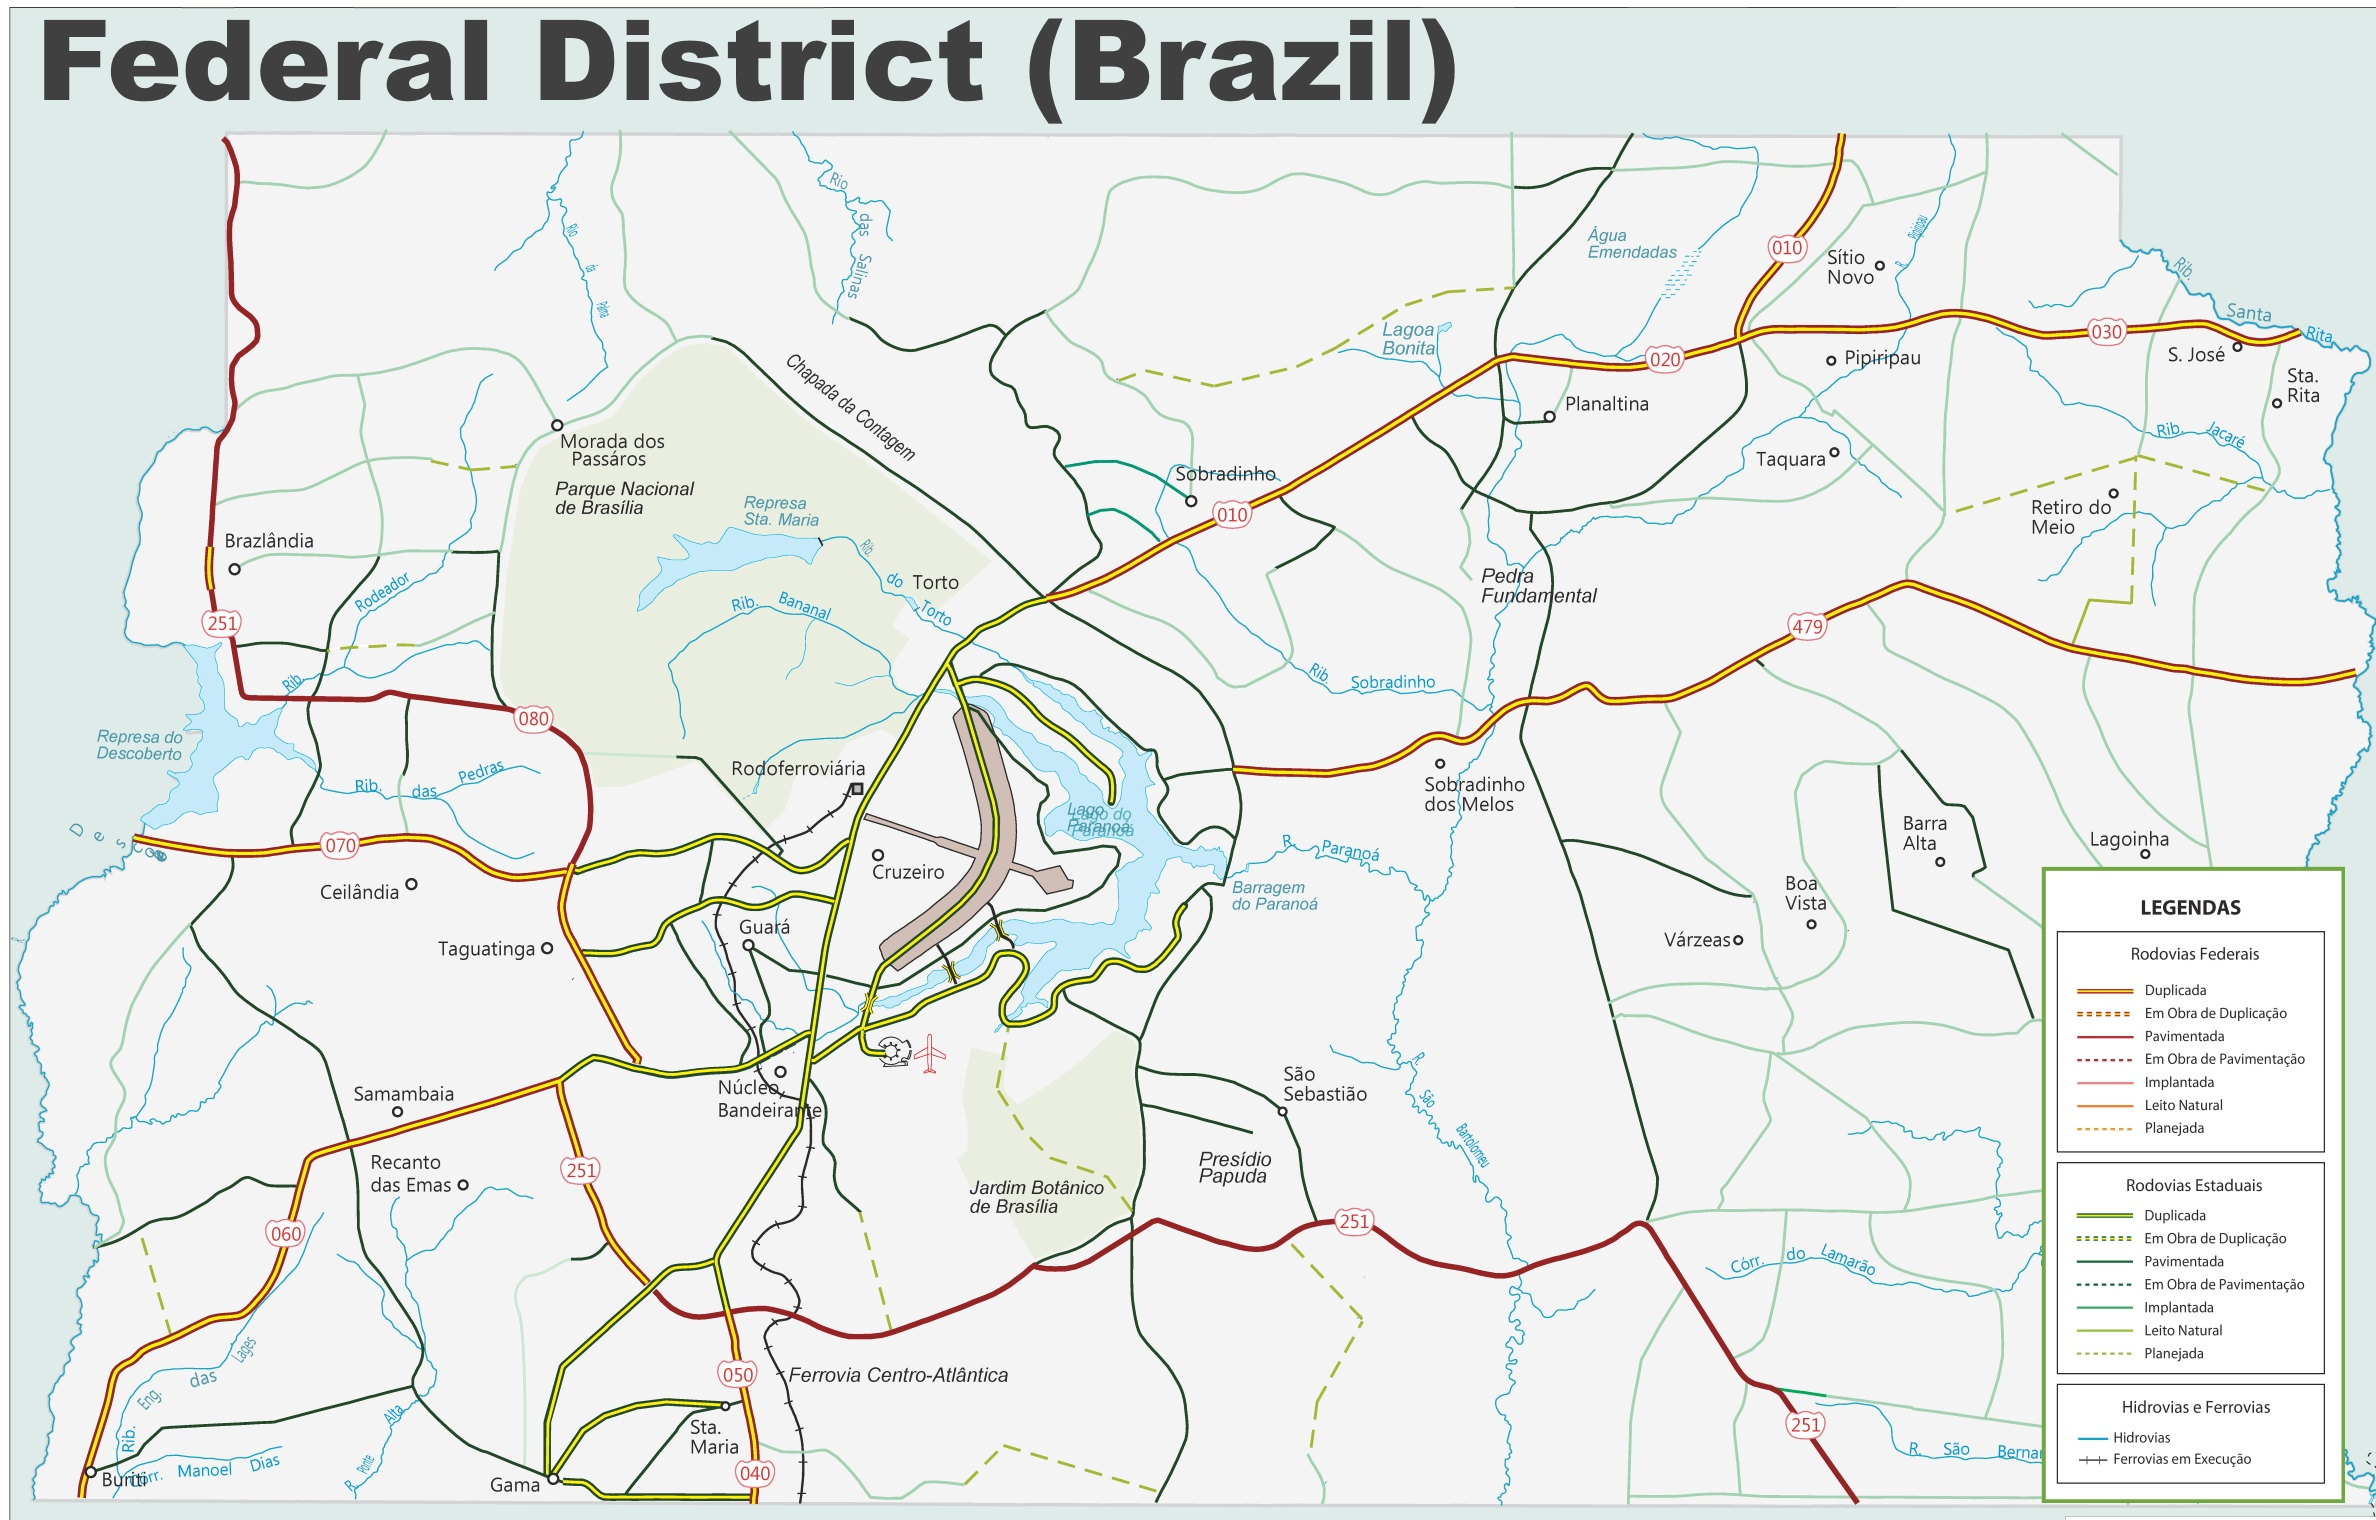 Federal District road map